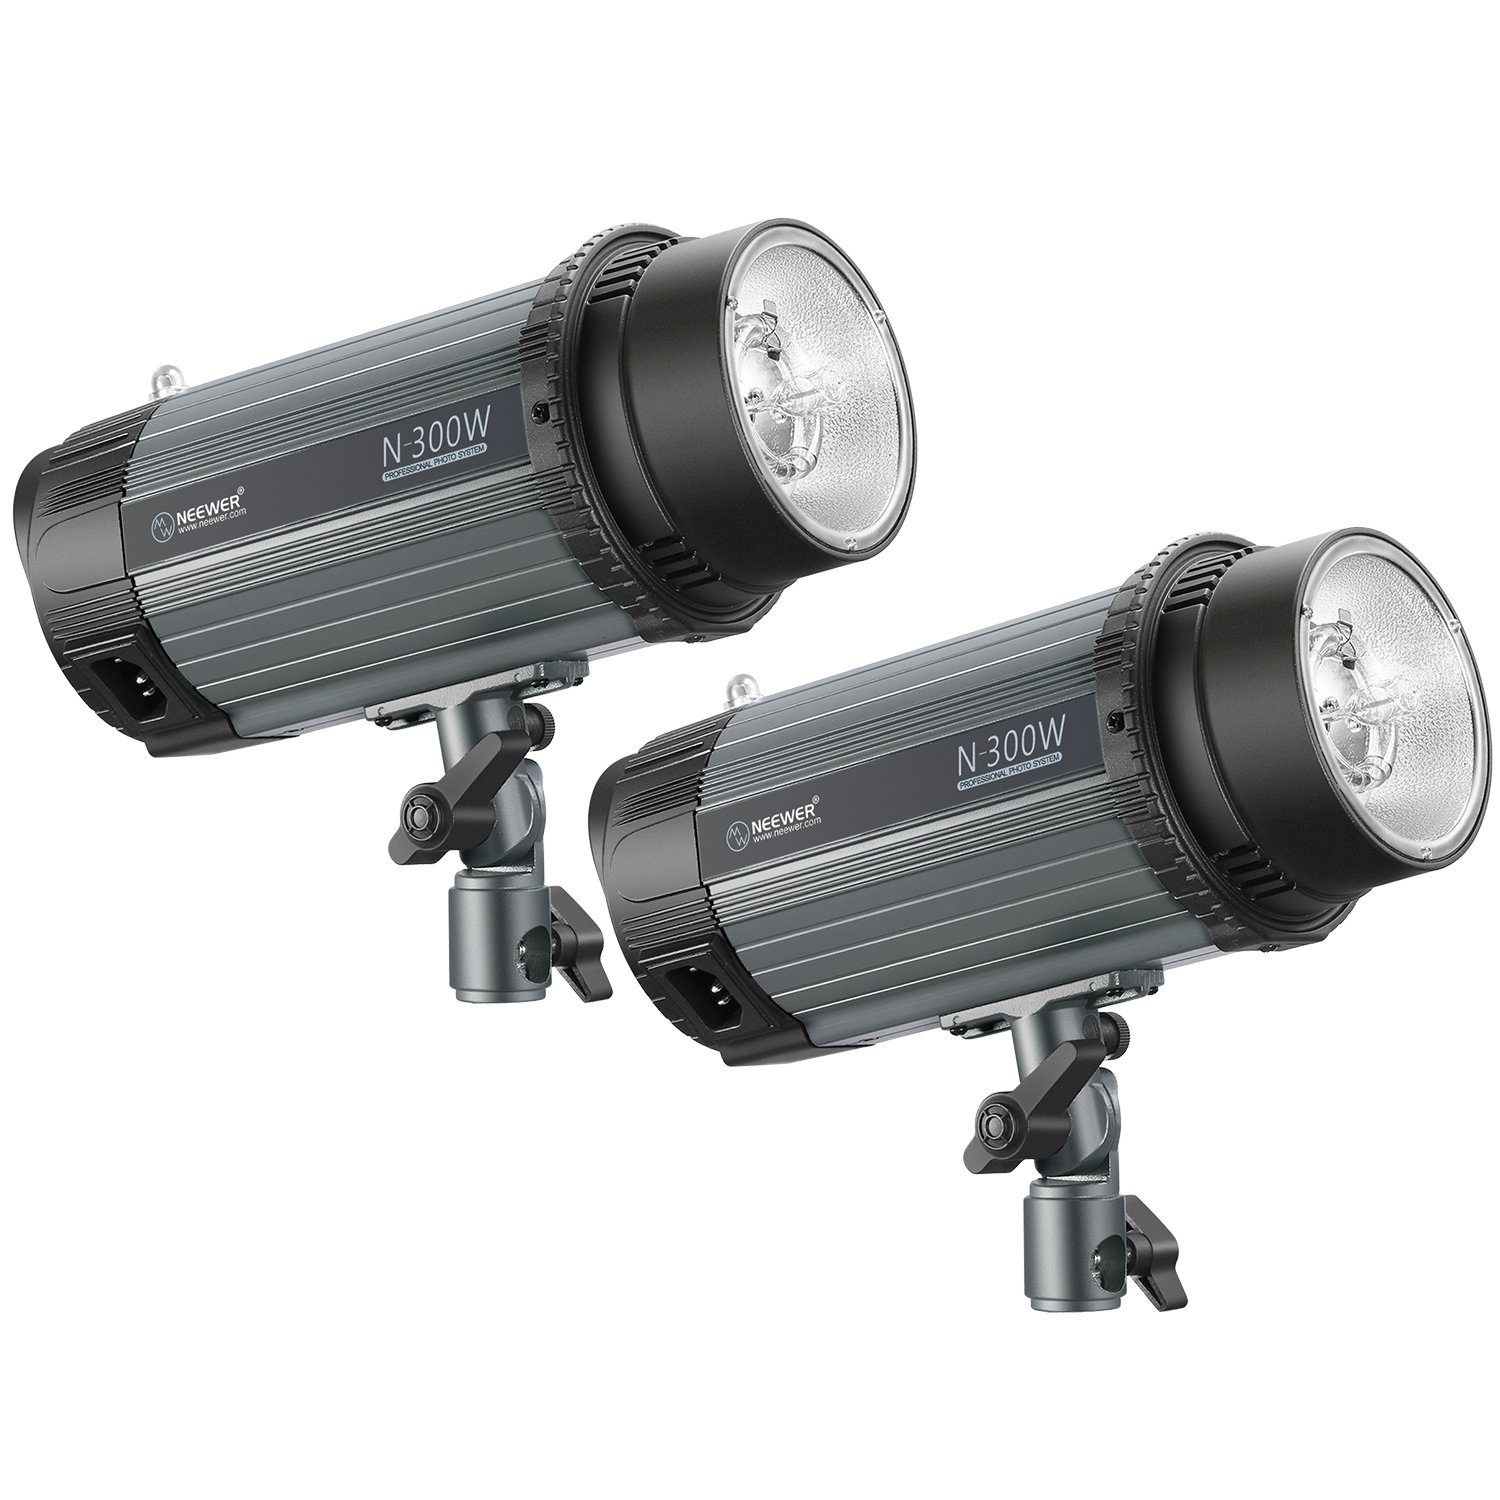 Neewer 750W£ ¨ 3-Pack 250W£ © 5600K Photo Studio Strobe Flash Light Monolight with Modeling Lamp, Aluminium Alloy Speedlite for Indoor Studio Location Model Photography, Portrait Photography(N-250W) 90093215